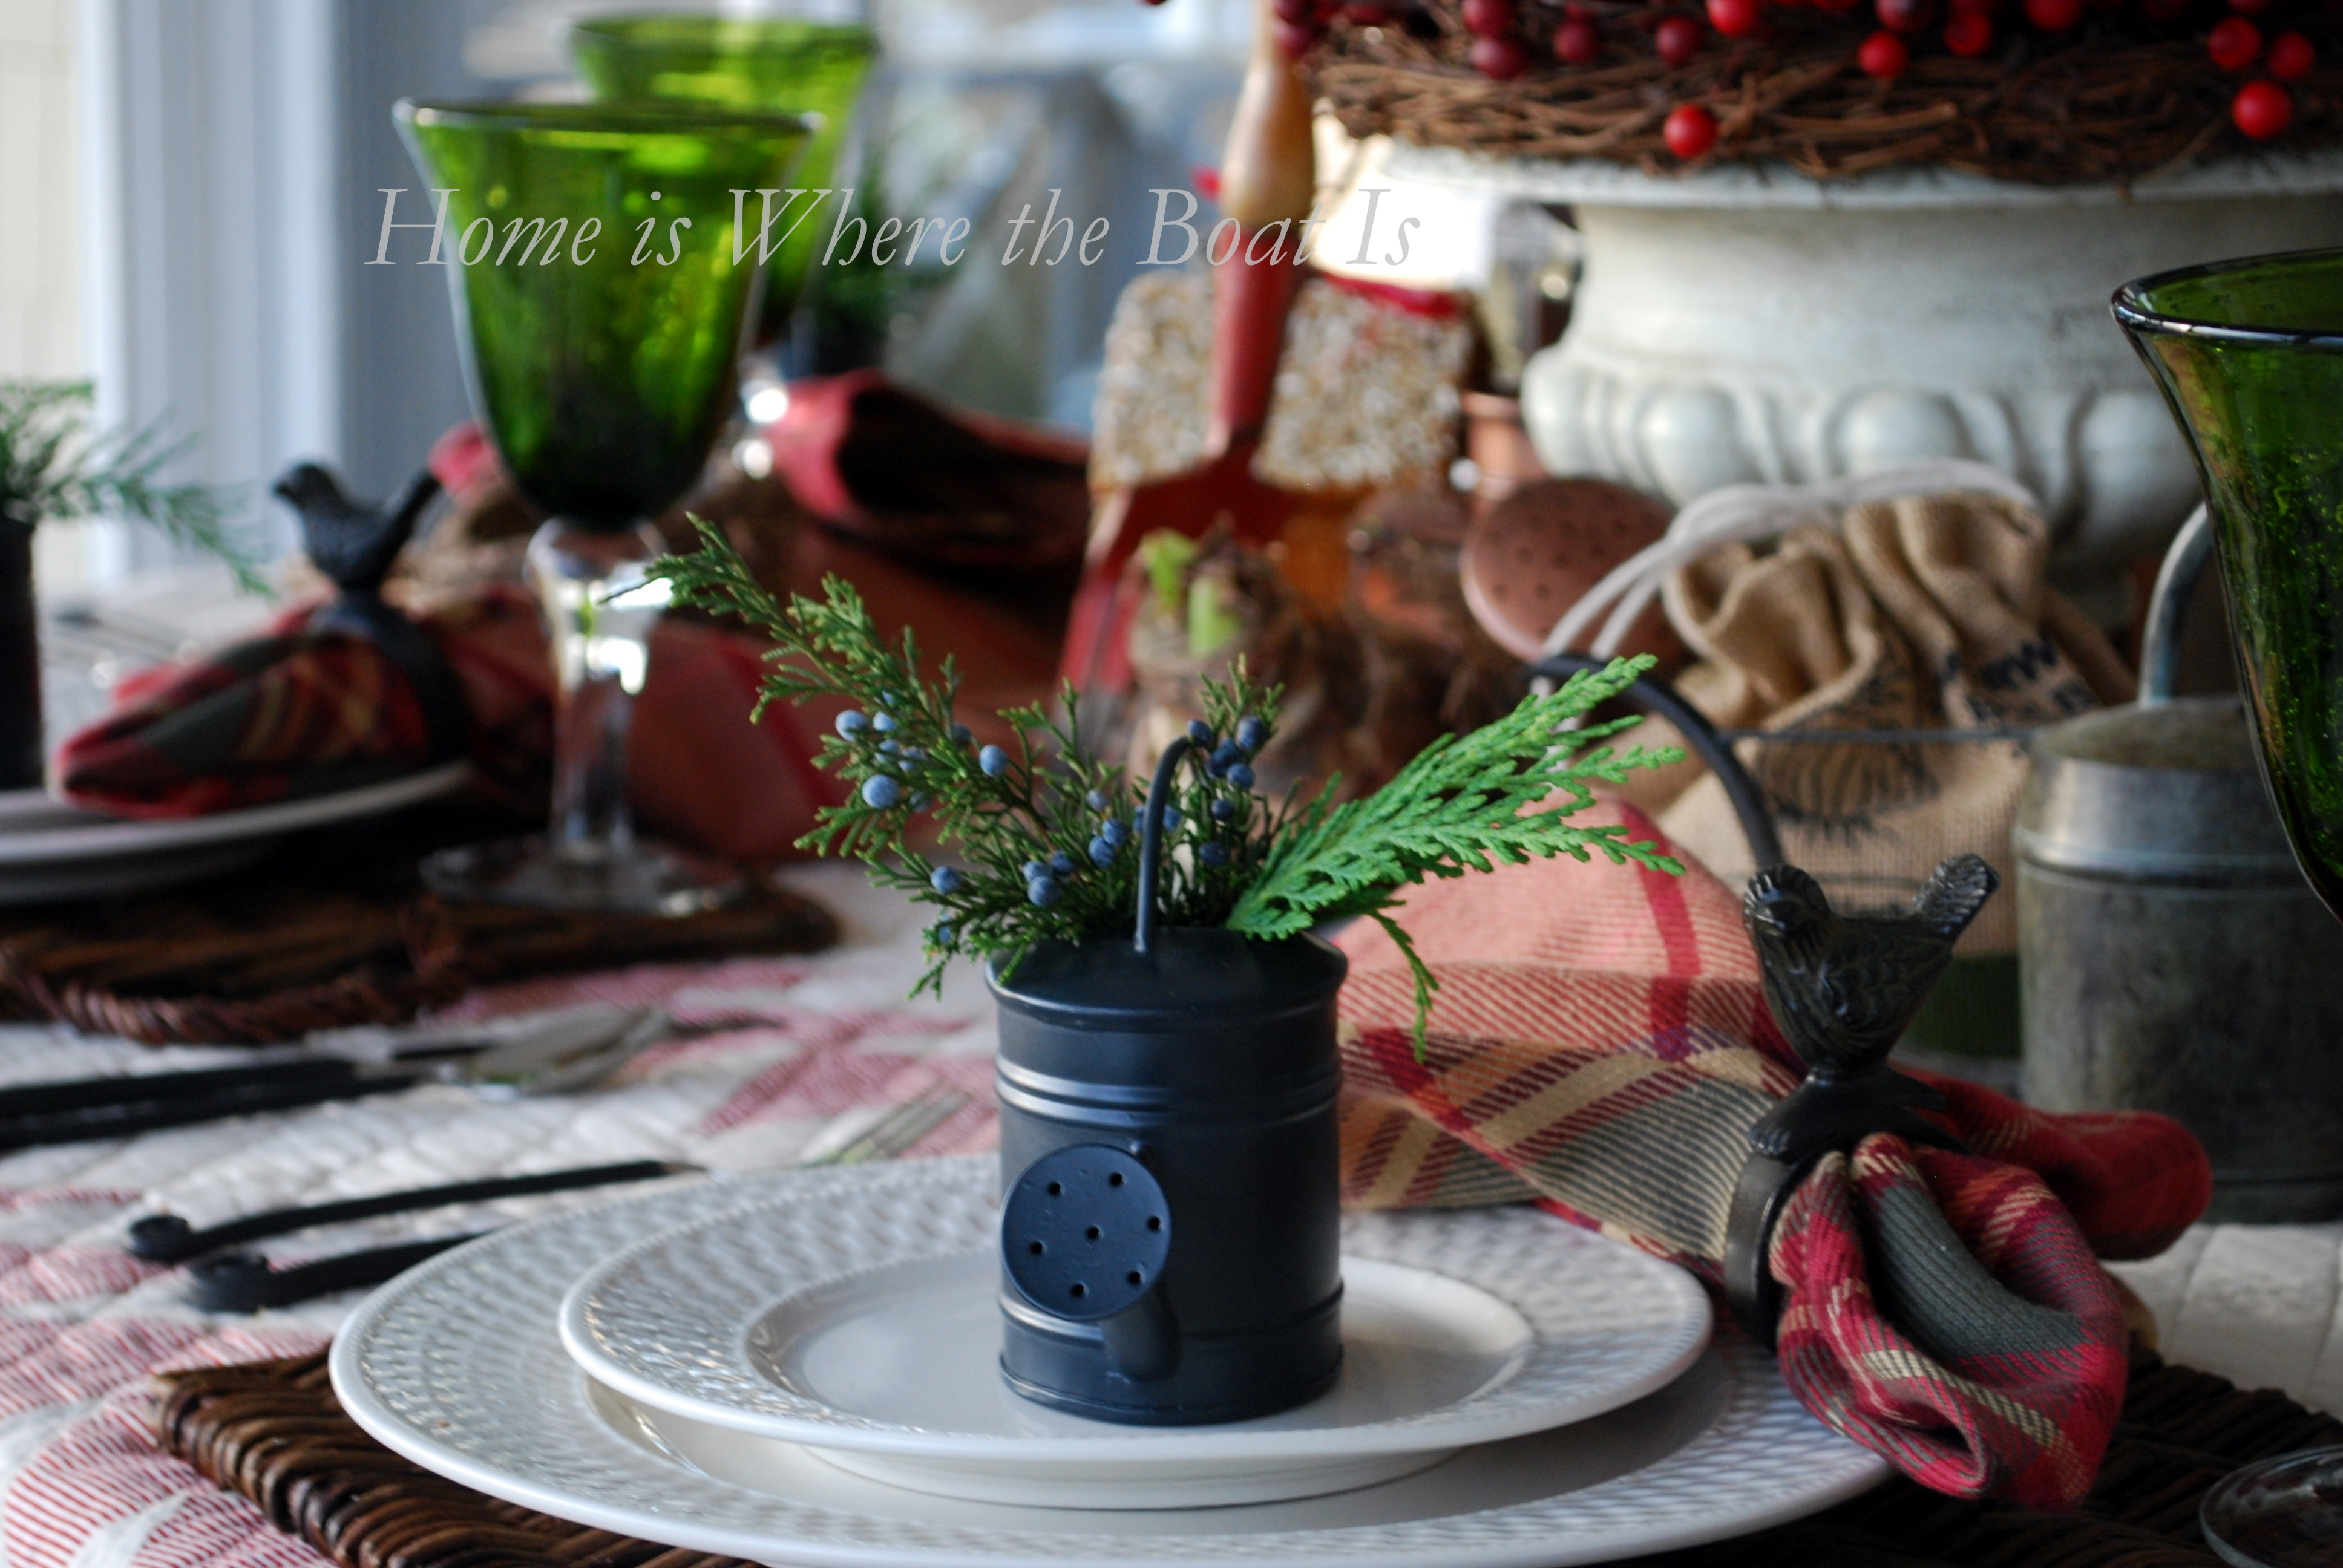 A Gardener S Christmas Home Is Where The Boat Is